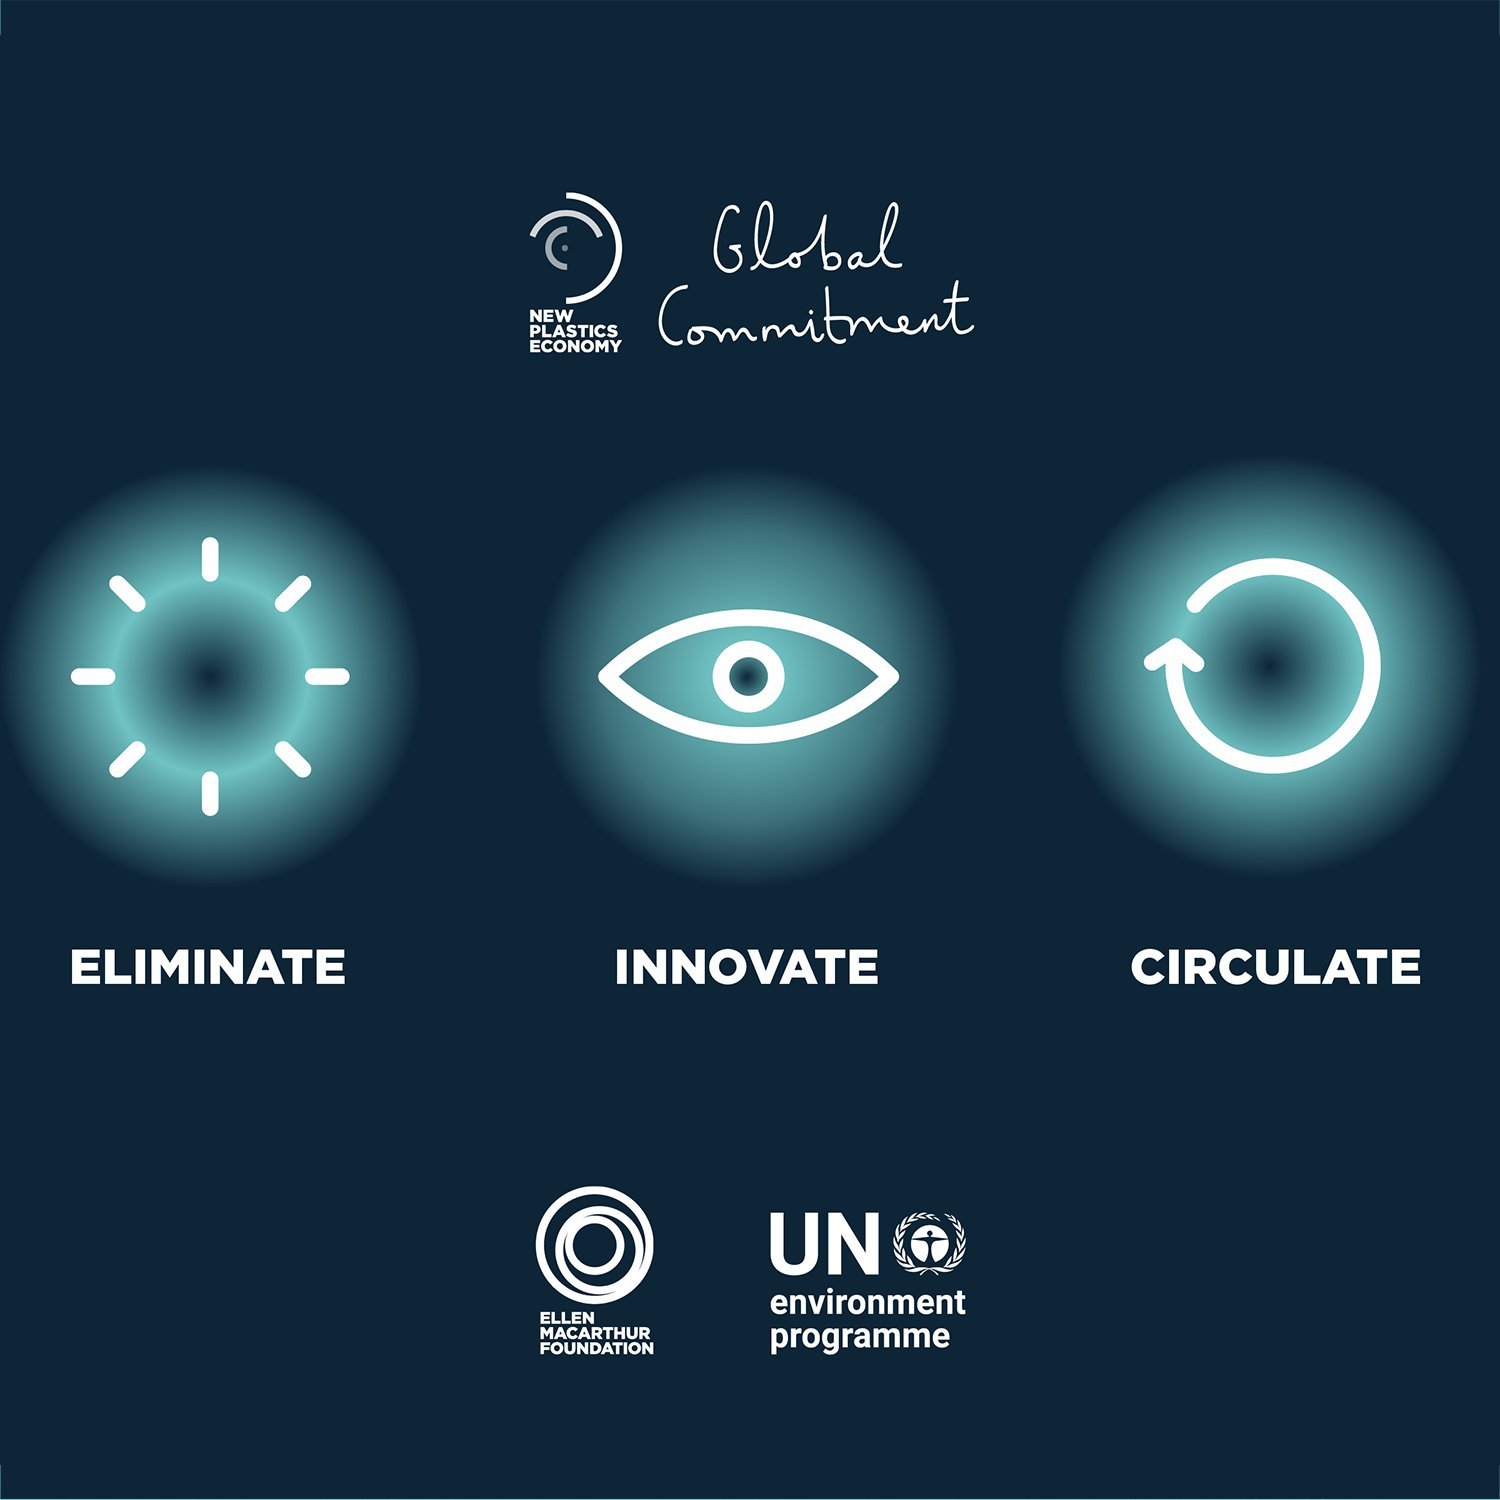 Image showing we need to eliminate innovate and circulate